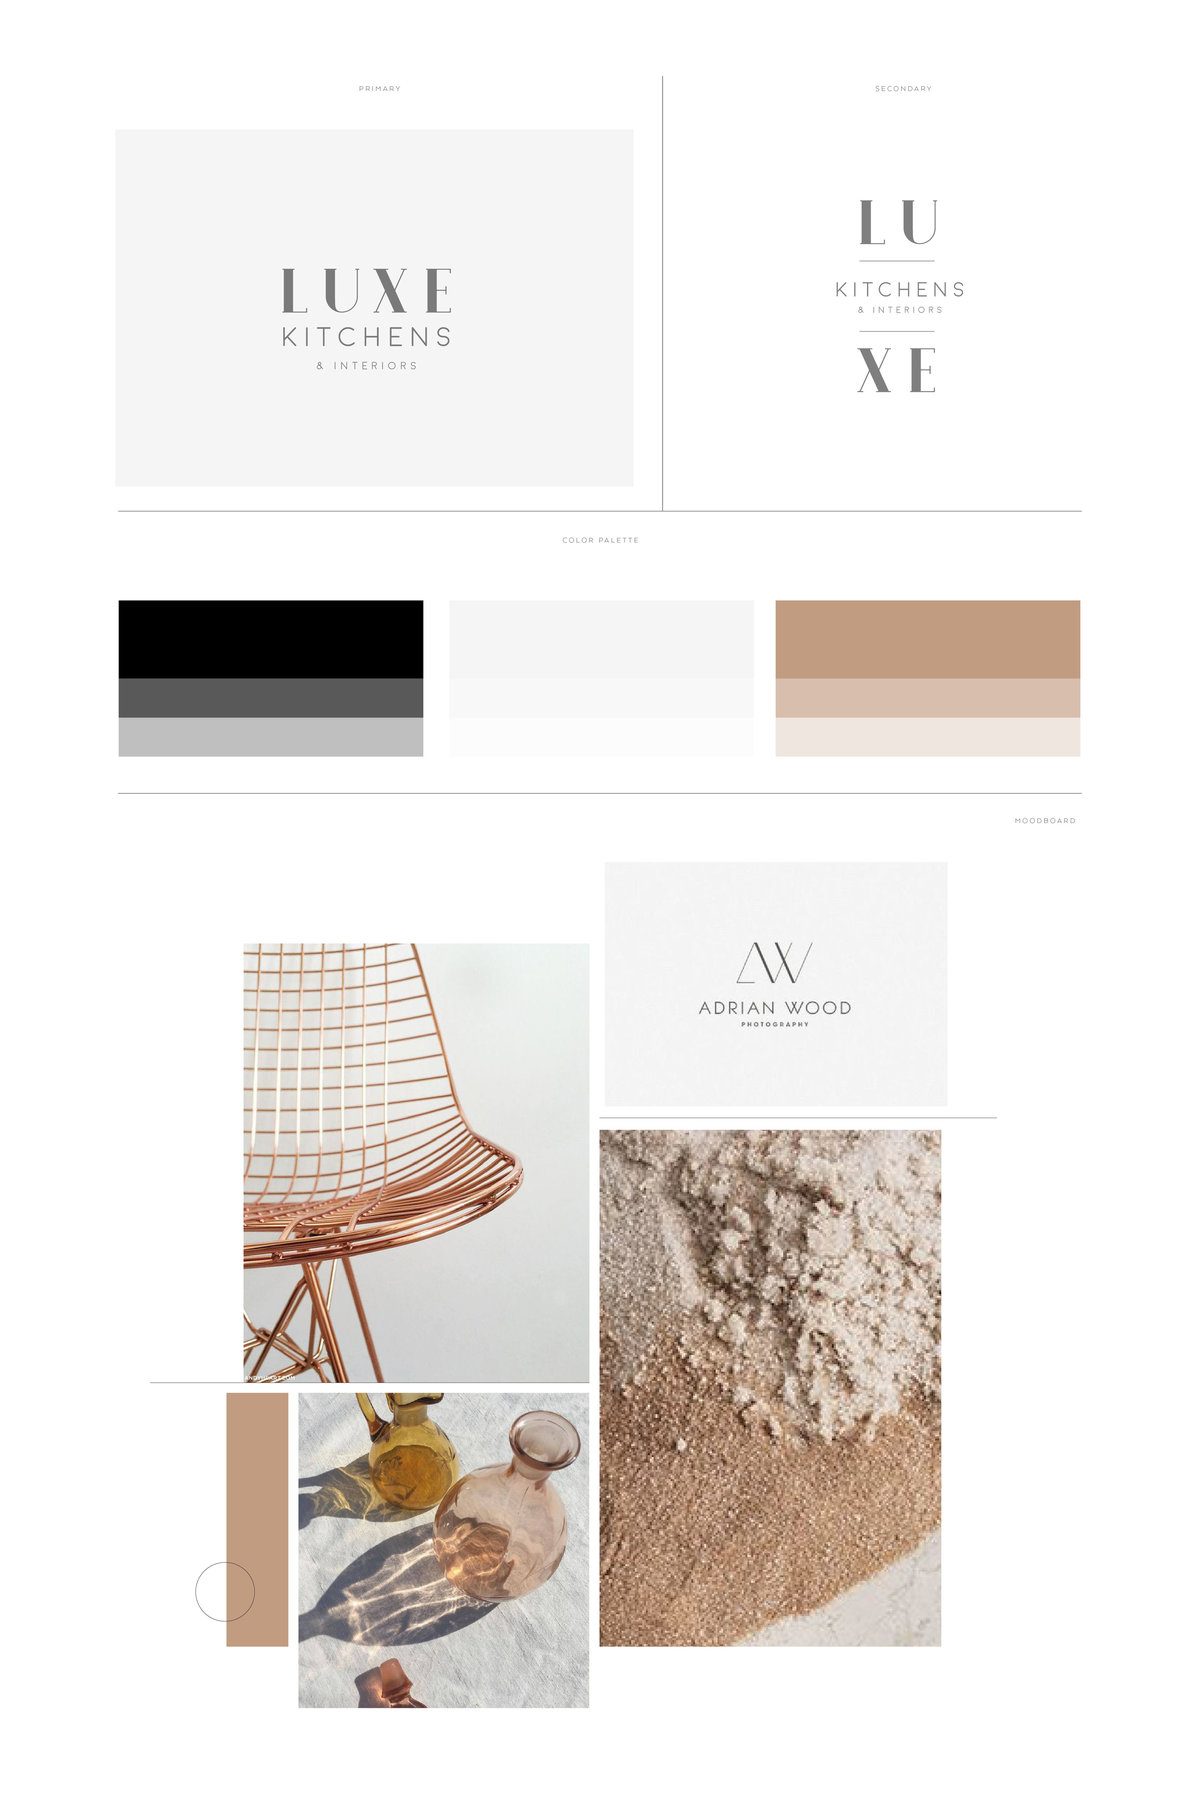 LUXEKITCHENS_HONOR_BRANDBOARD_01